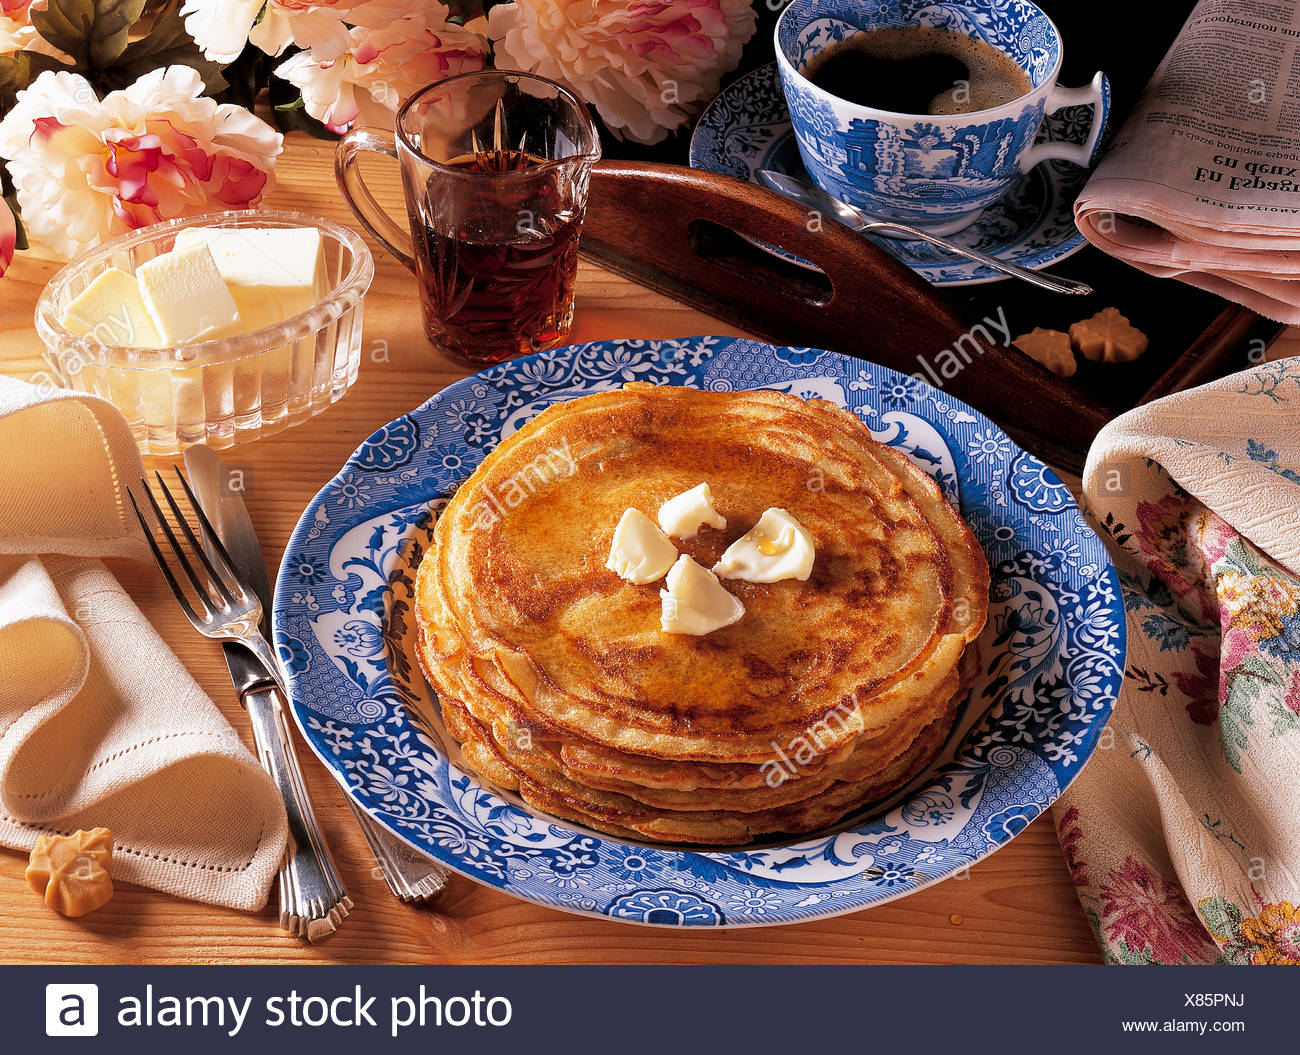 Pancakes with maple syrup, Canada, recipe available for a fee - Stock Image